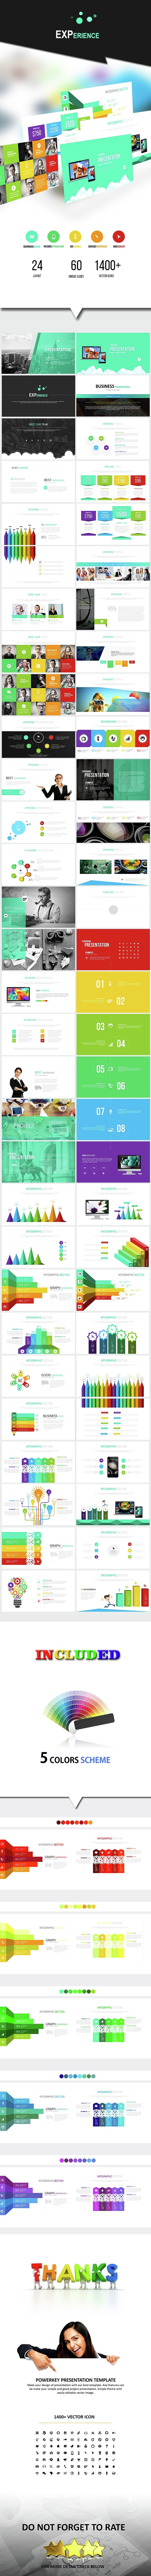 EXPERIENCE - Powerpoint Business Presentation - Business PowerPoint Templates